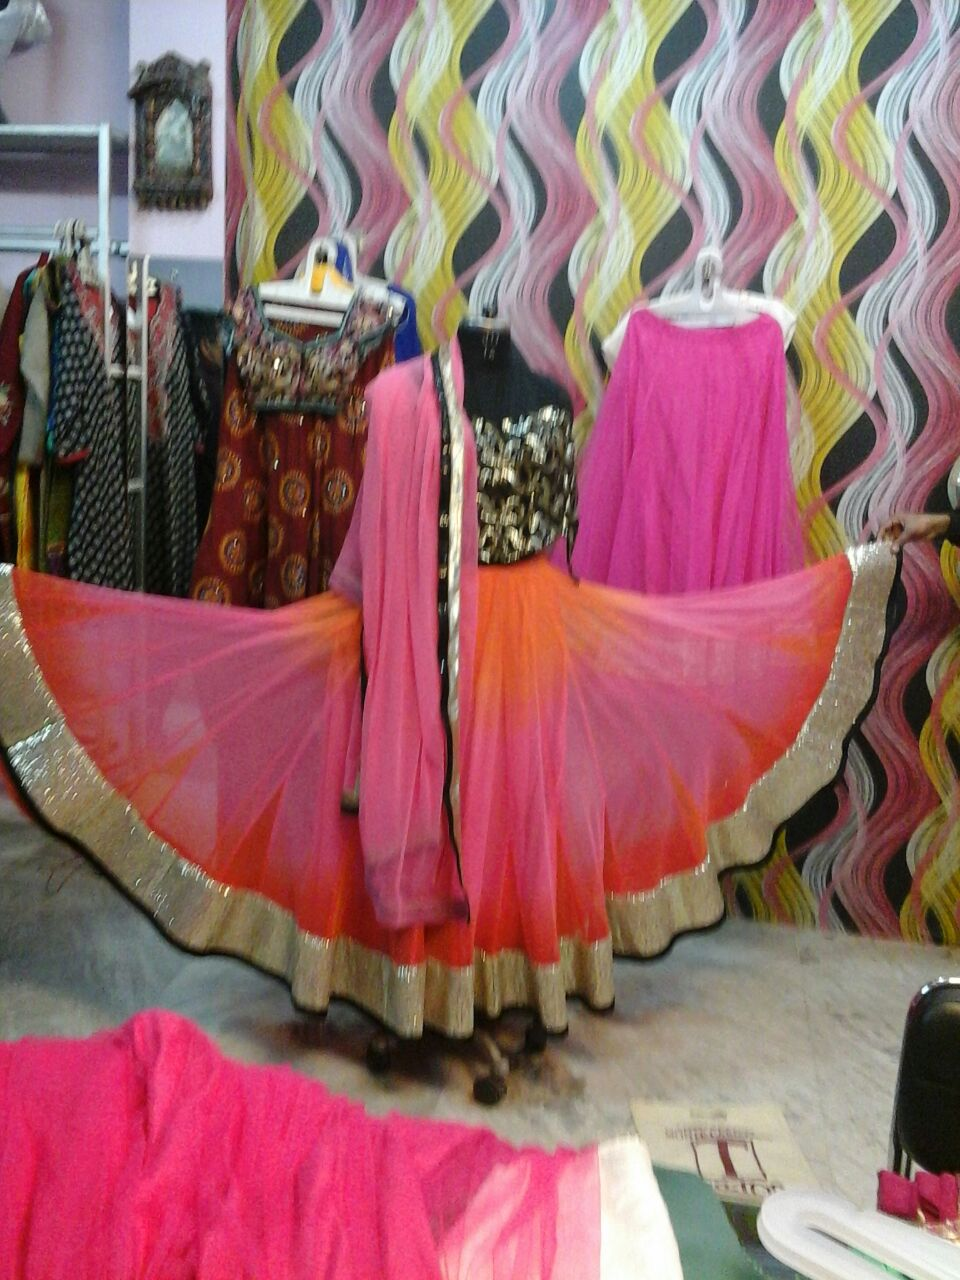 Women's Wear in Vasundhara, Ghaziabad